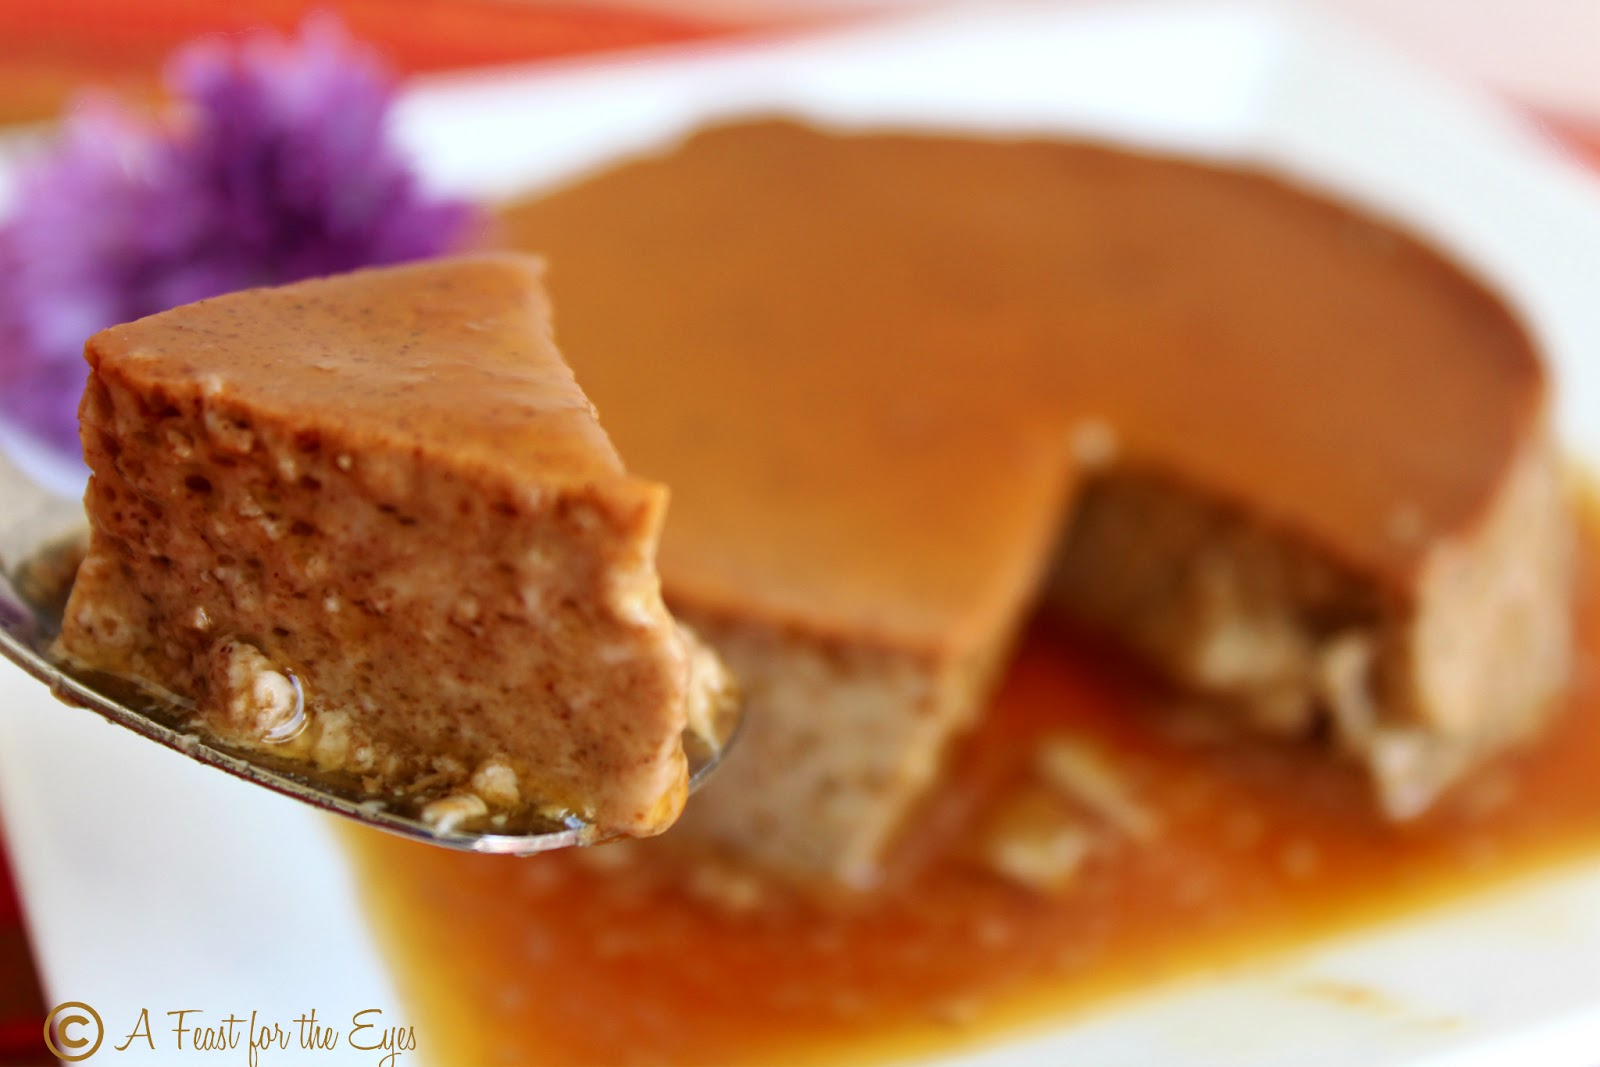 Feast for the Eyes: Mexican Chocolate Flan